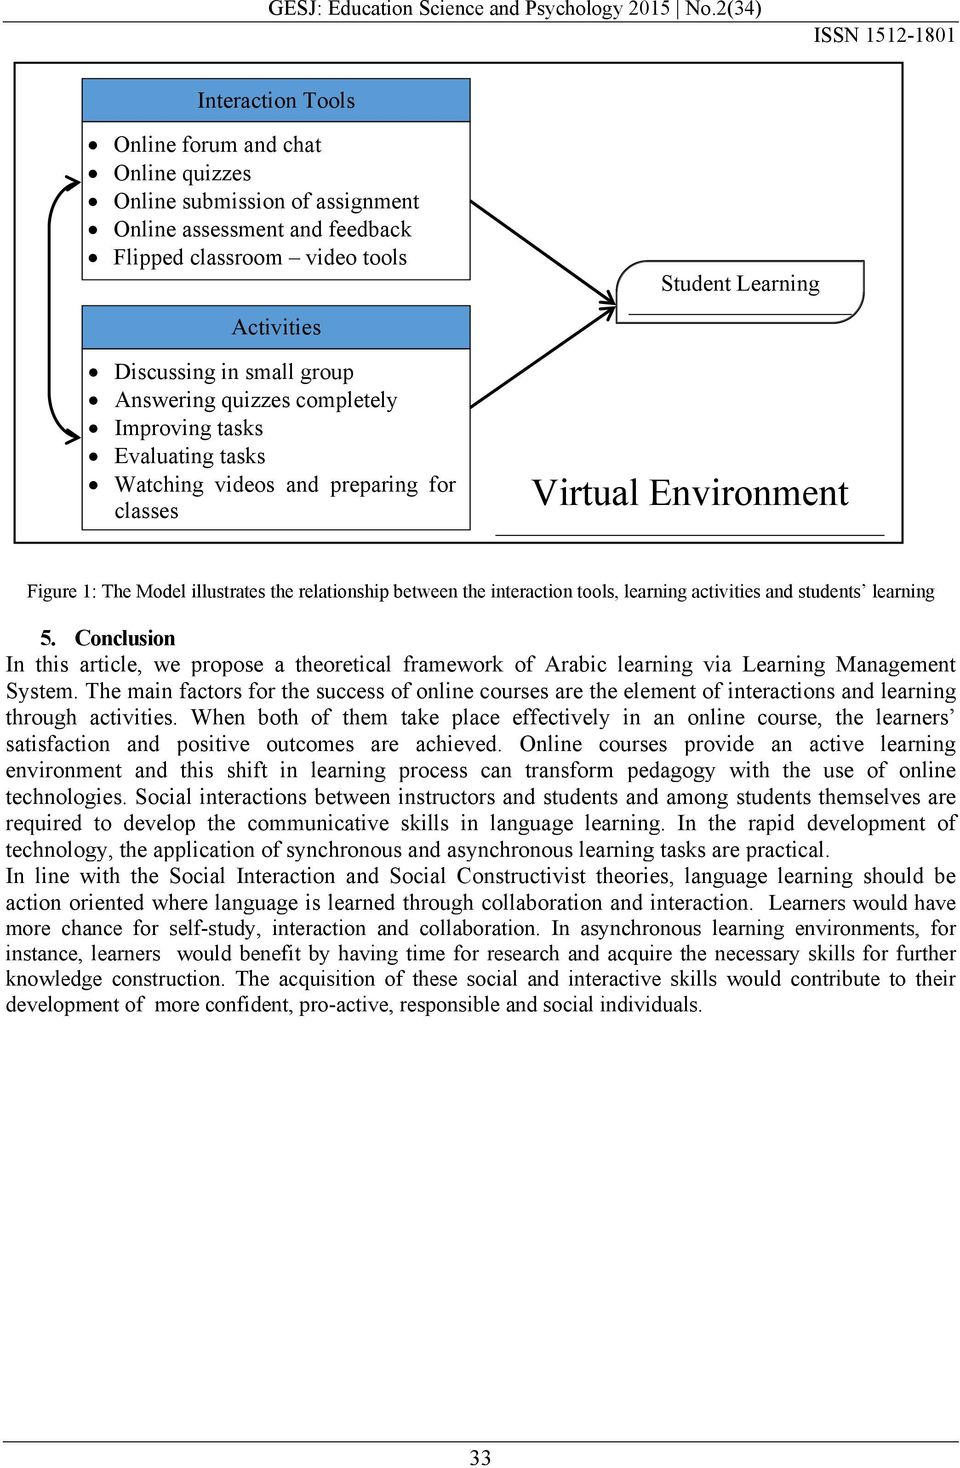 interaction tools, learning activities and students learning 5. Conclusion In this article, we propose a theoretical framework of Arabic learning via Learning Management System.